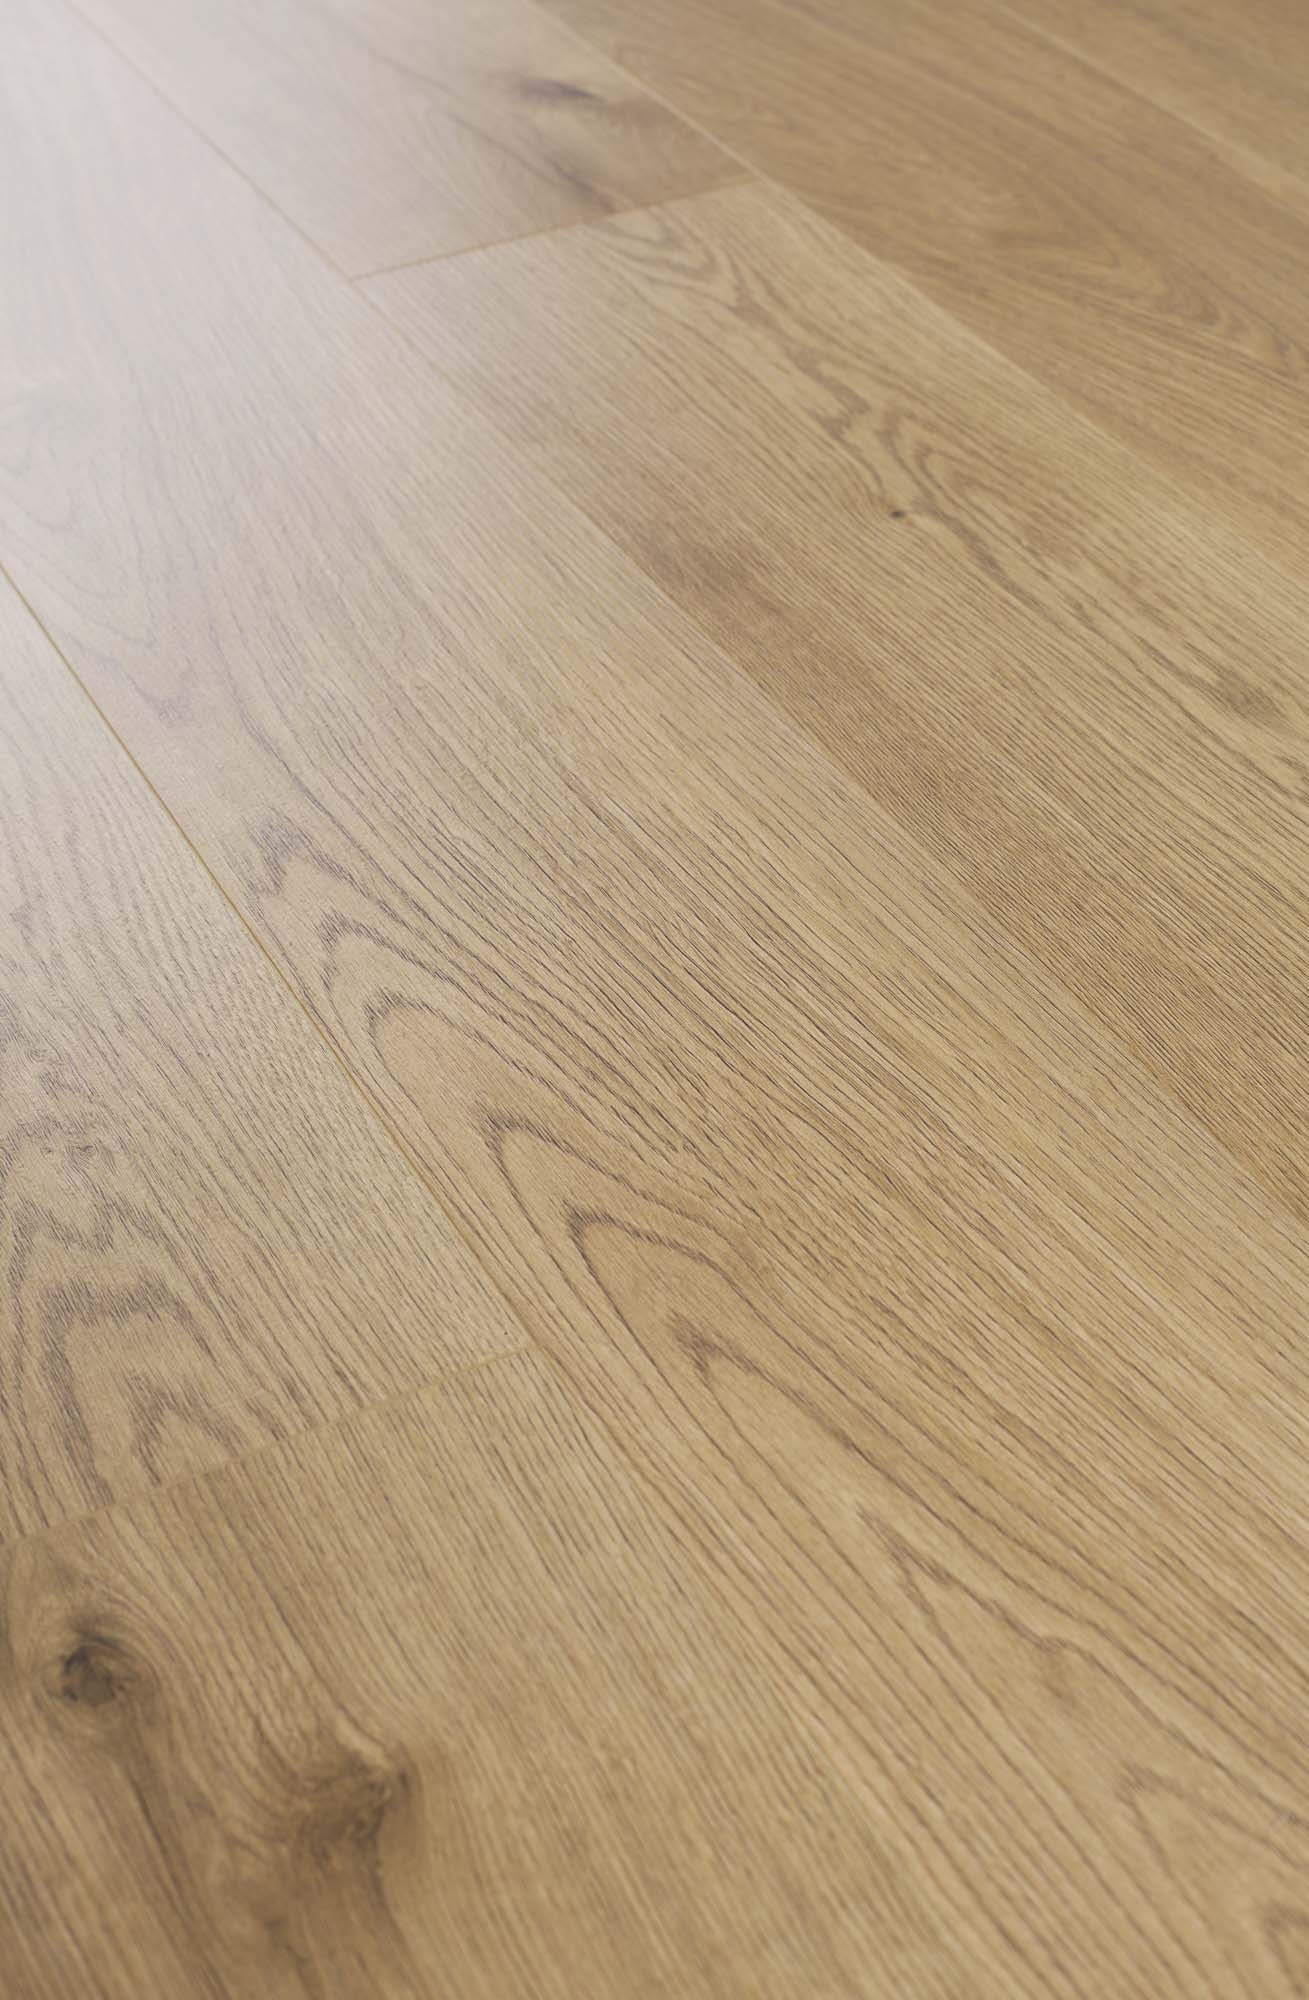 shaw hardwood flooring reviews of discontinued shaw area rugs new sono luxury vinyl plank michigan oak with regard to discontinued shaw area rugs new sono luxury vinyl plank michigan oak sfison 3 61